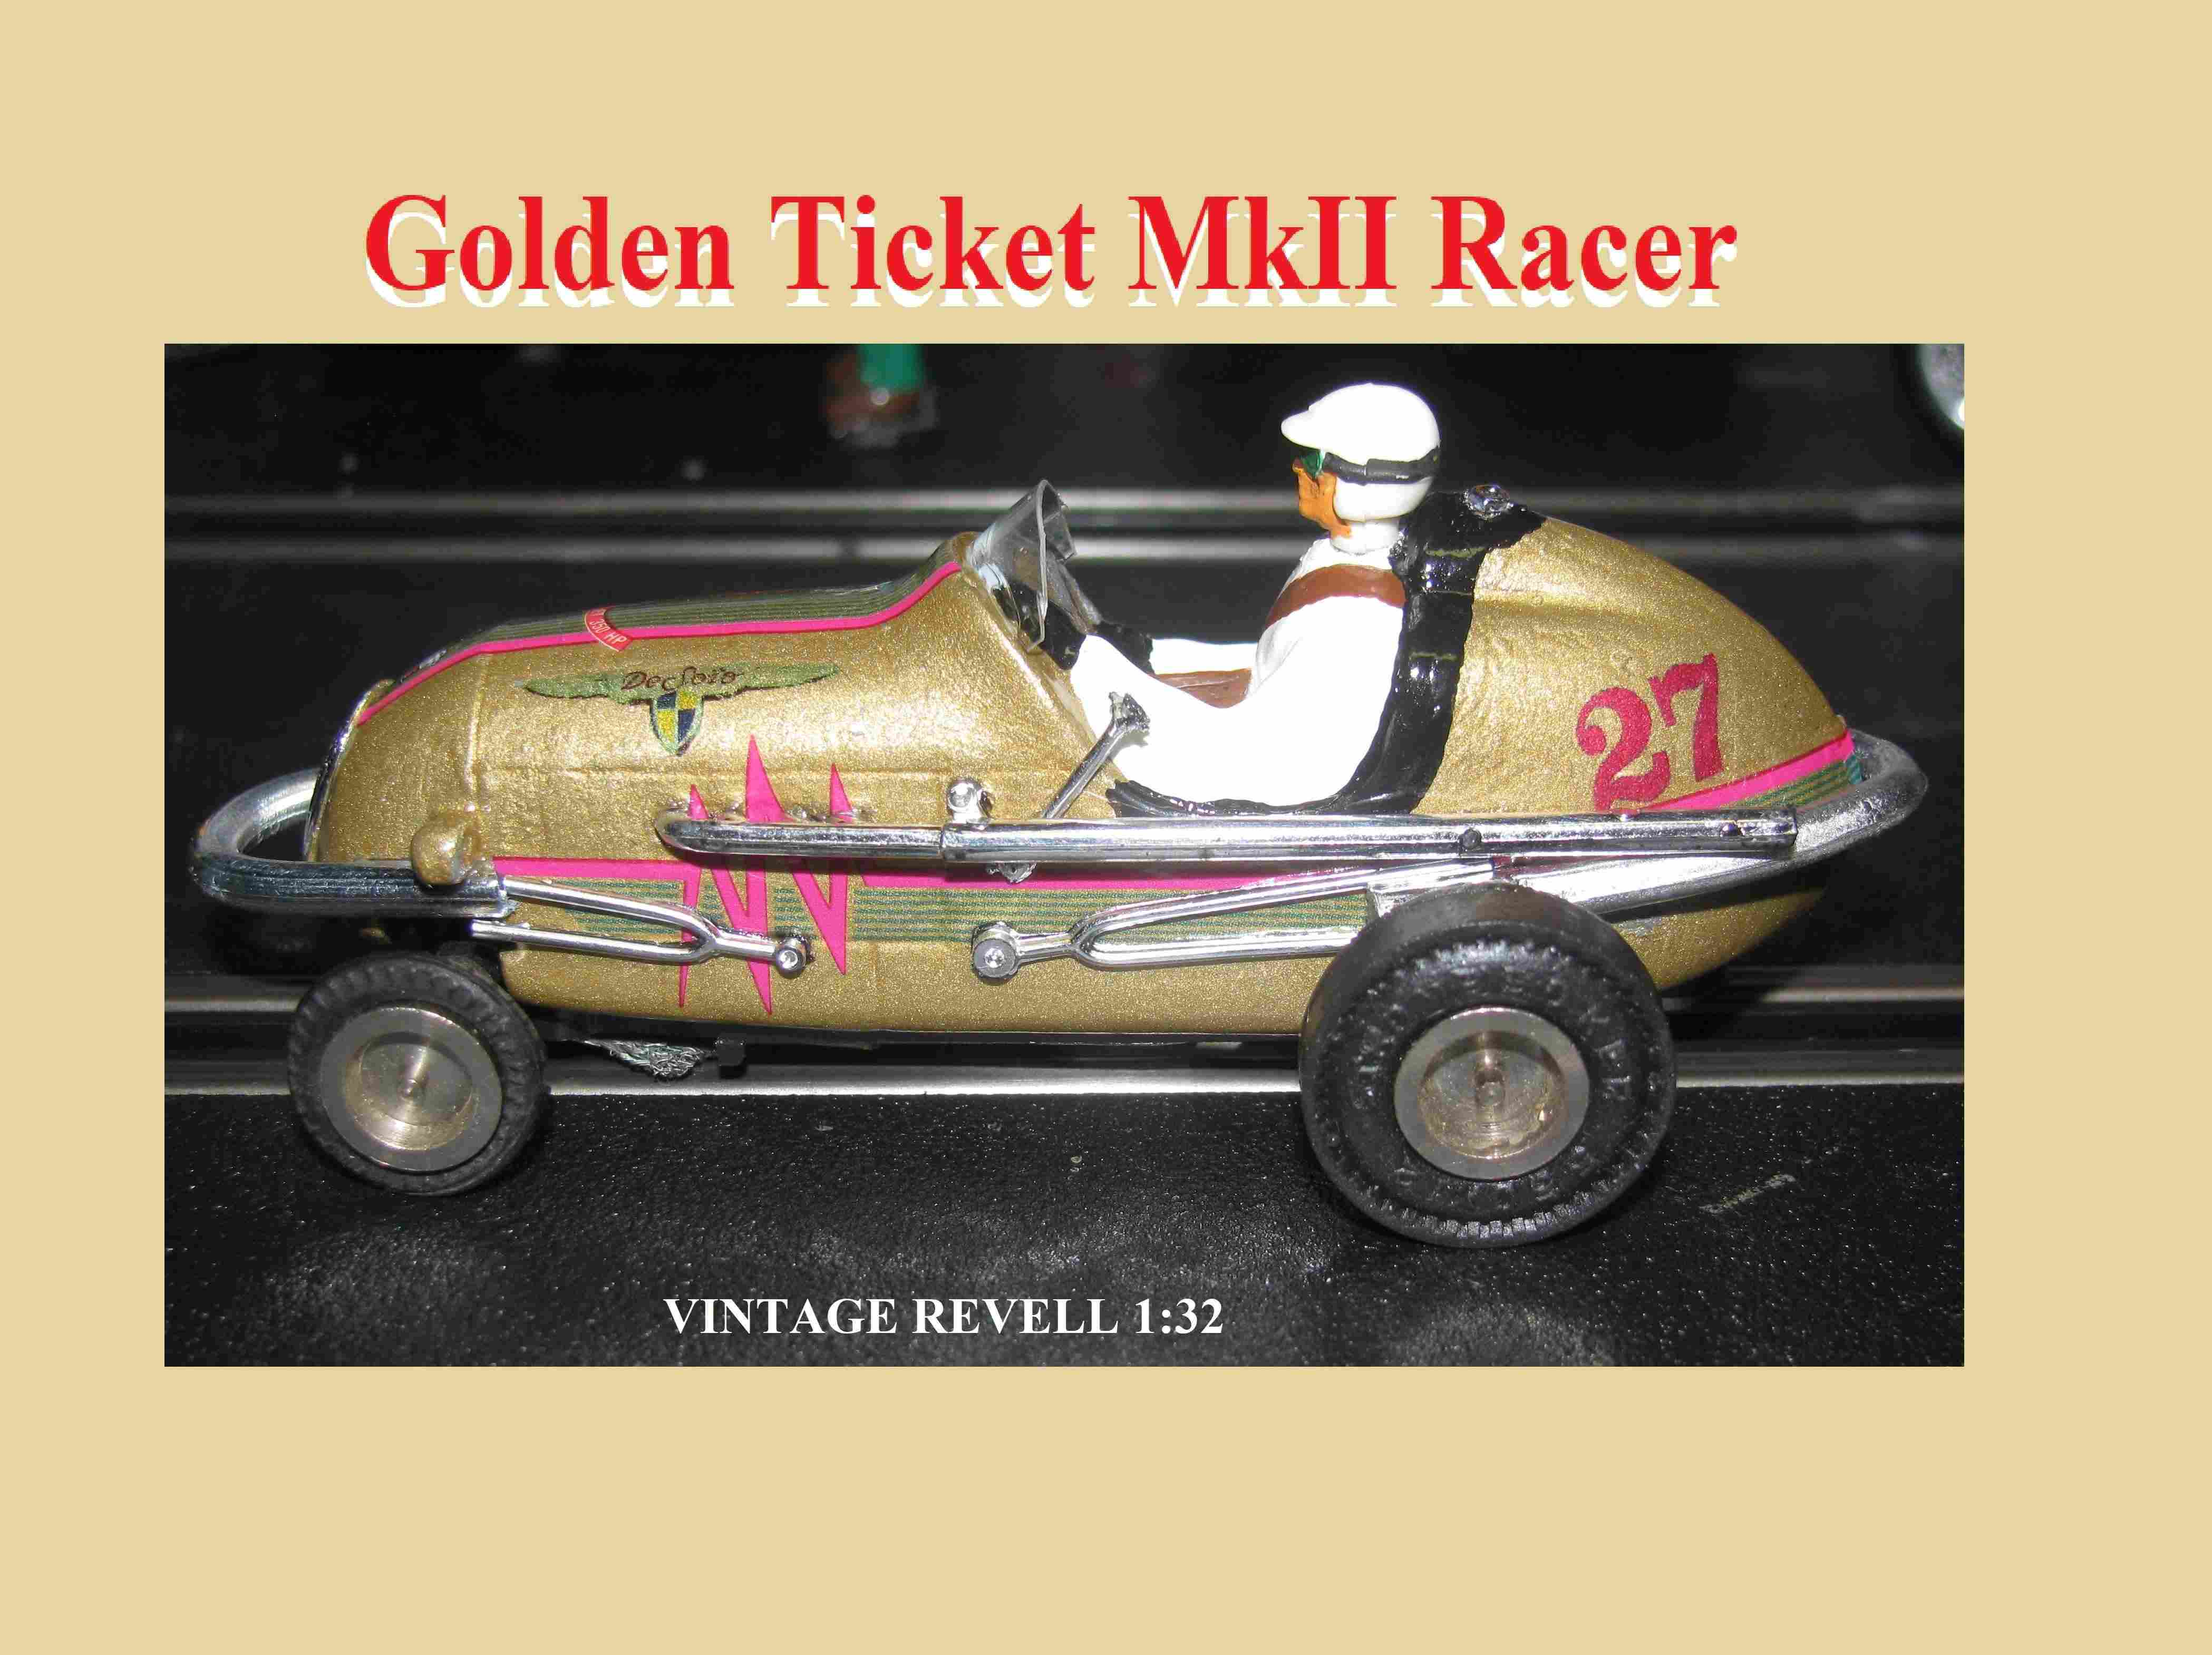 * SOLD * * FOR CHARLES E. ONLY * Revell Midget Racer Golden Ticket MkII Racing Special Slot Car 1:32 Scale